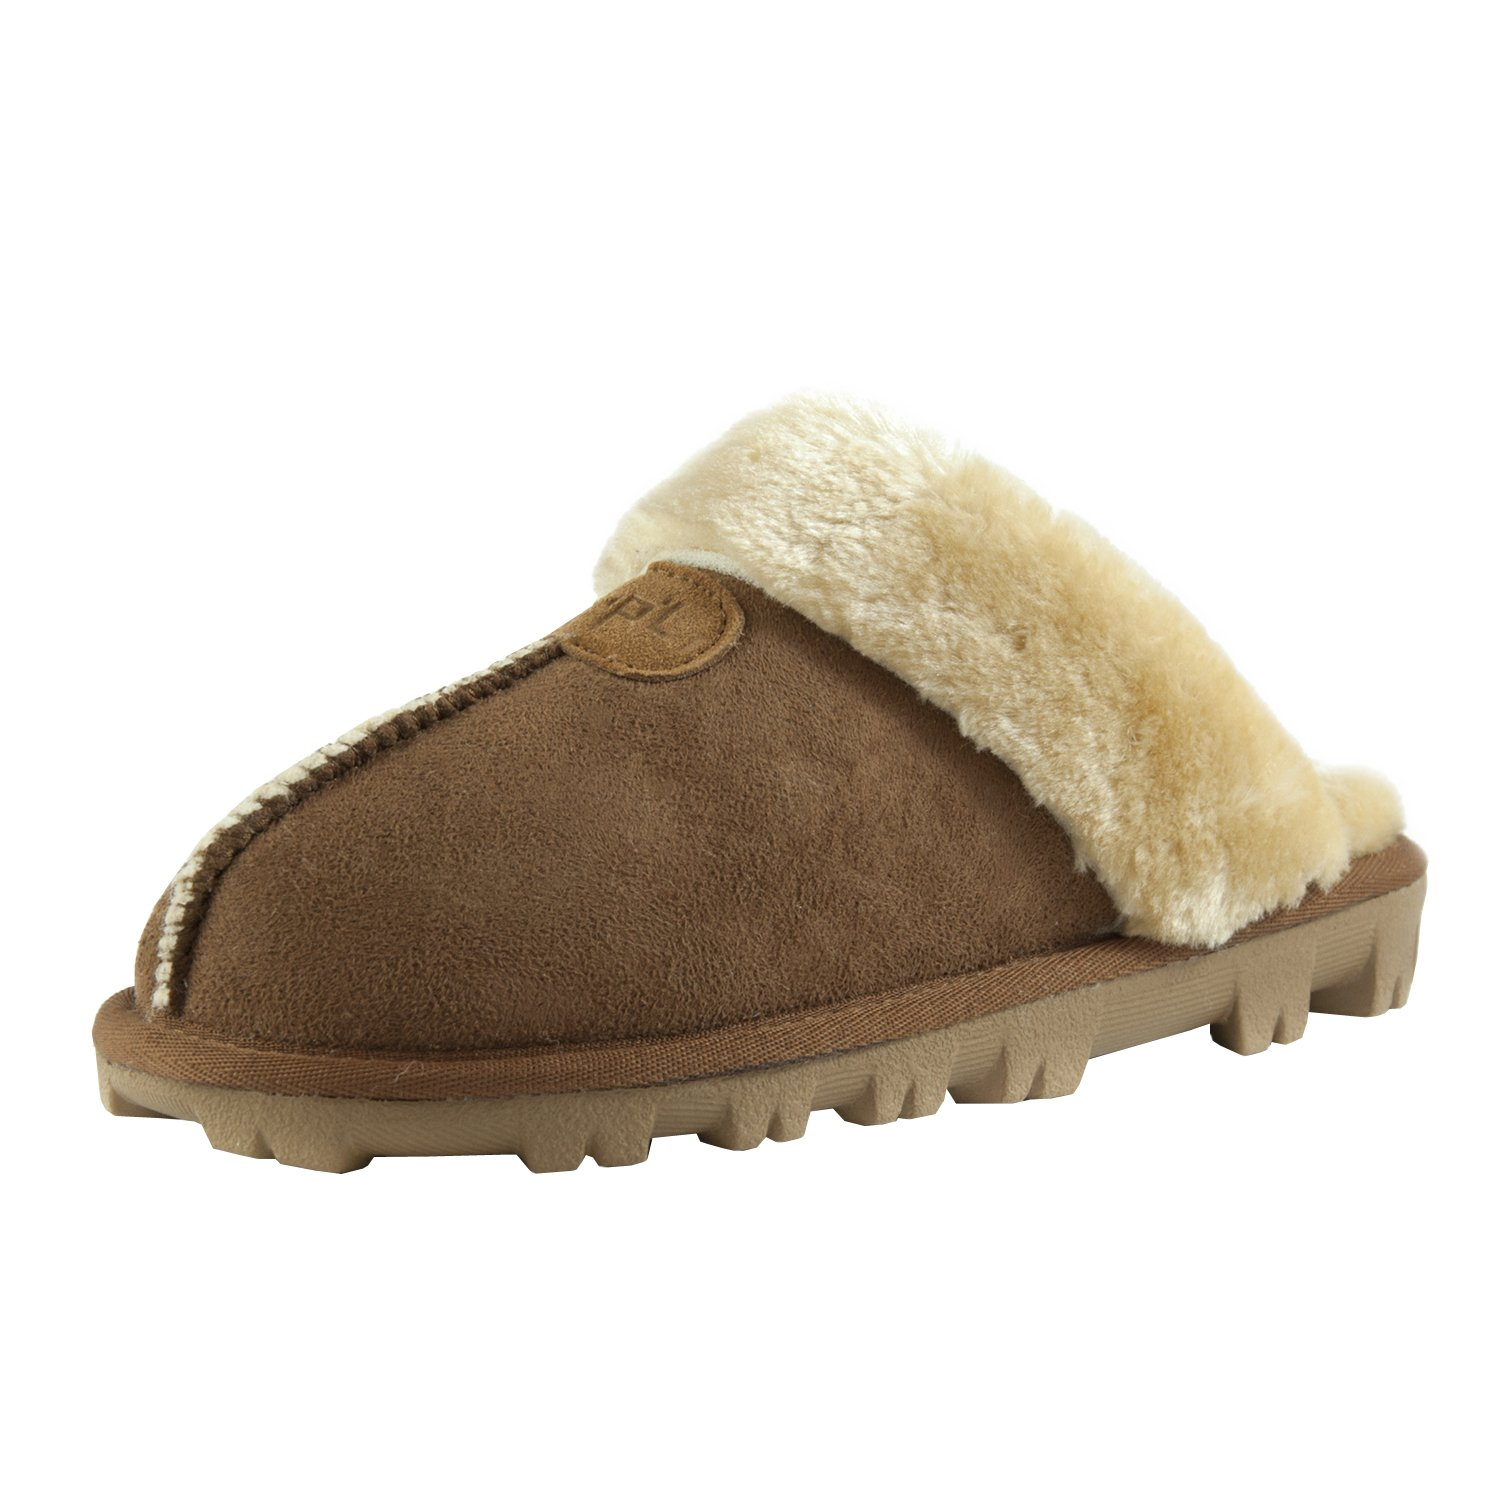 CLPP'LI Womens Slip on Faux Fur Warm Winter Mules Fluffy Suede Comfy Slippers